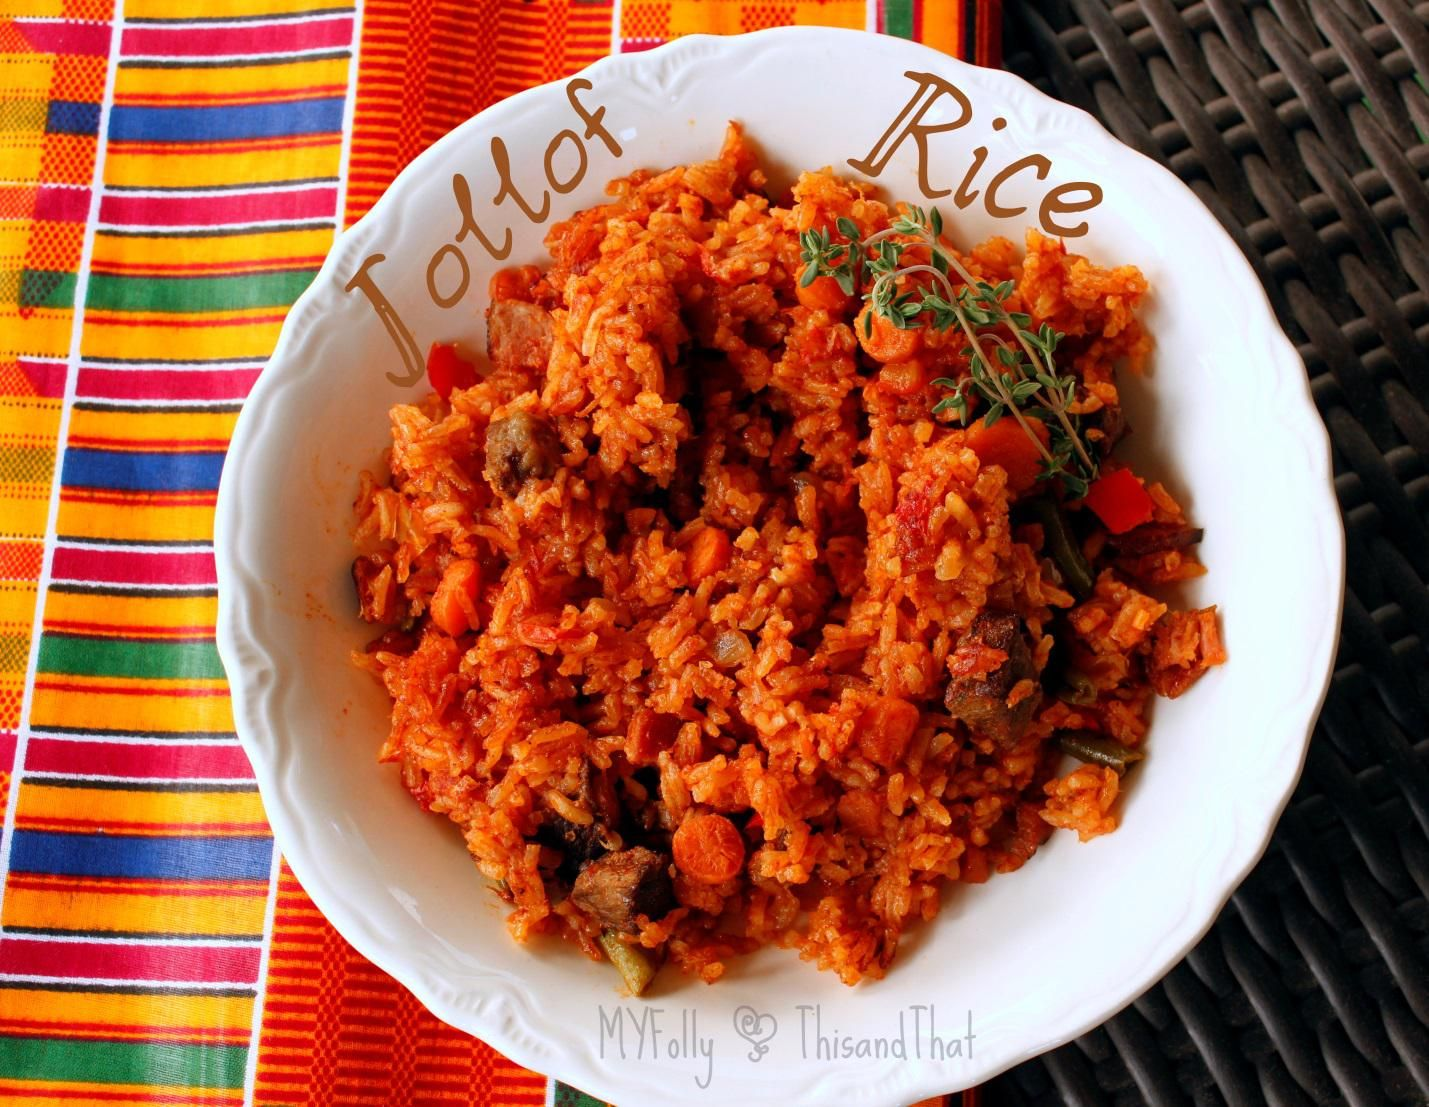 Jollof rice traditional african recipe just in case you want to jollof rice traditional african recipe just in case you want to bring something special forumfinder Gallery